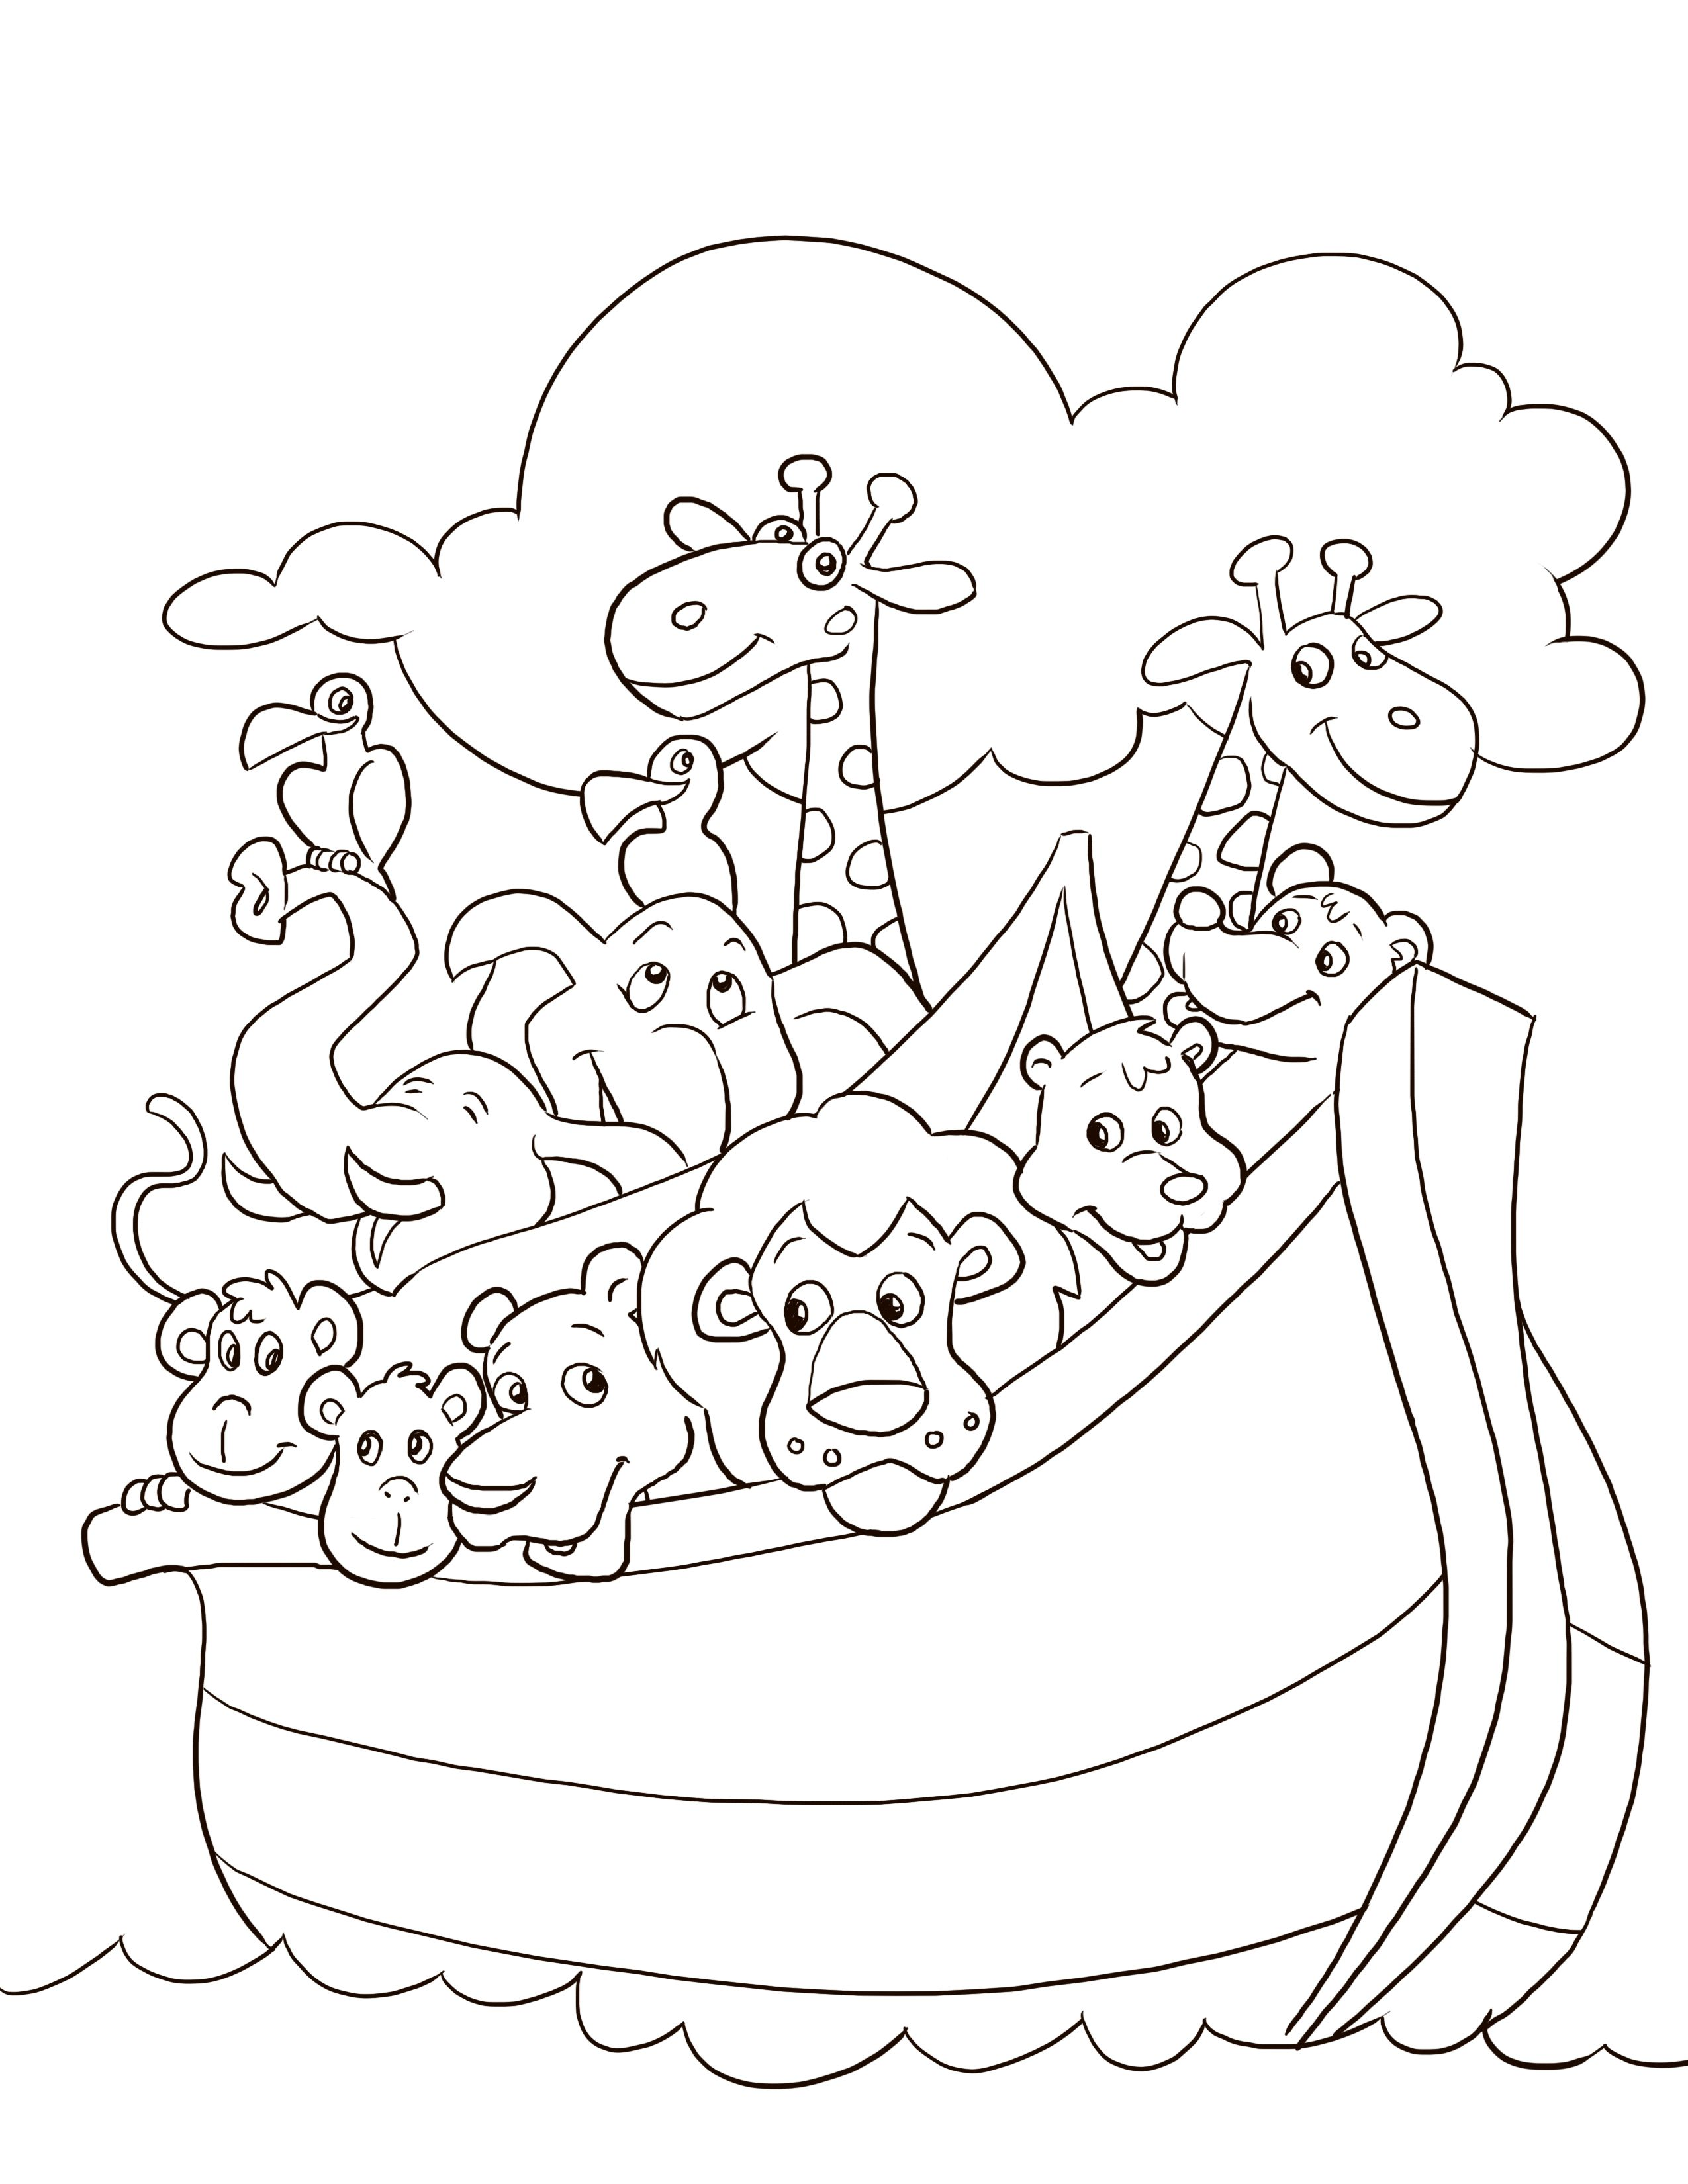 noah\'s ark coloring page | Coloring Pages | Pinterest | Sunday ...